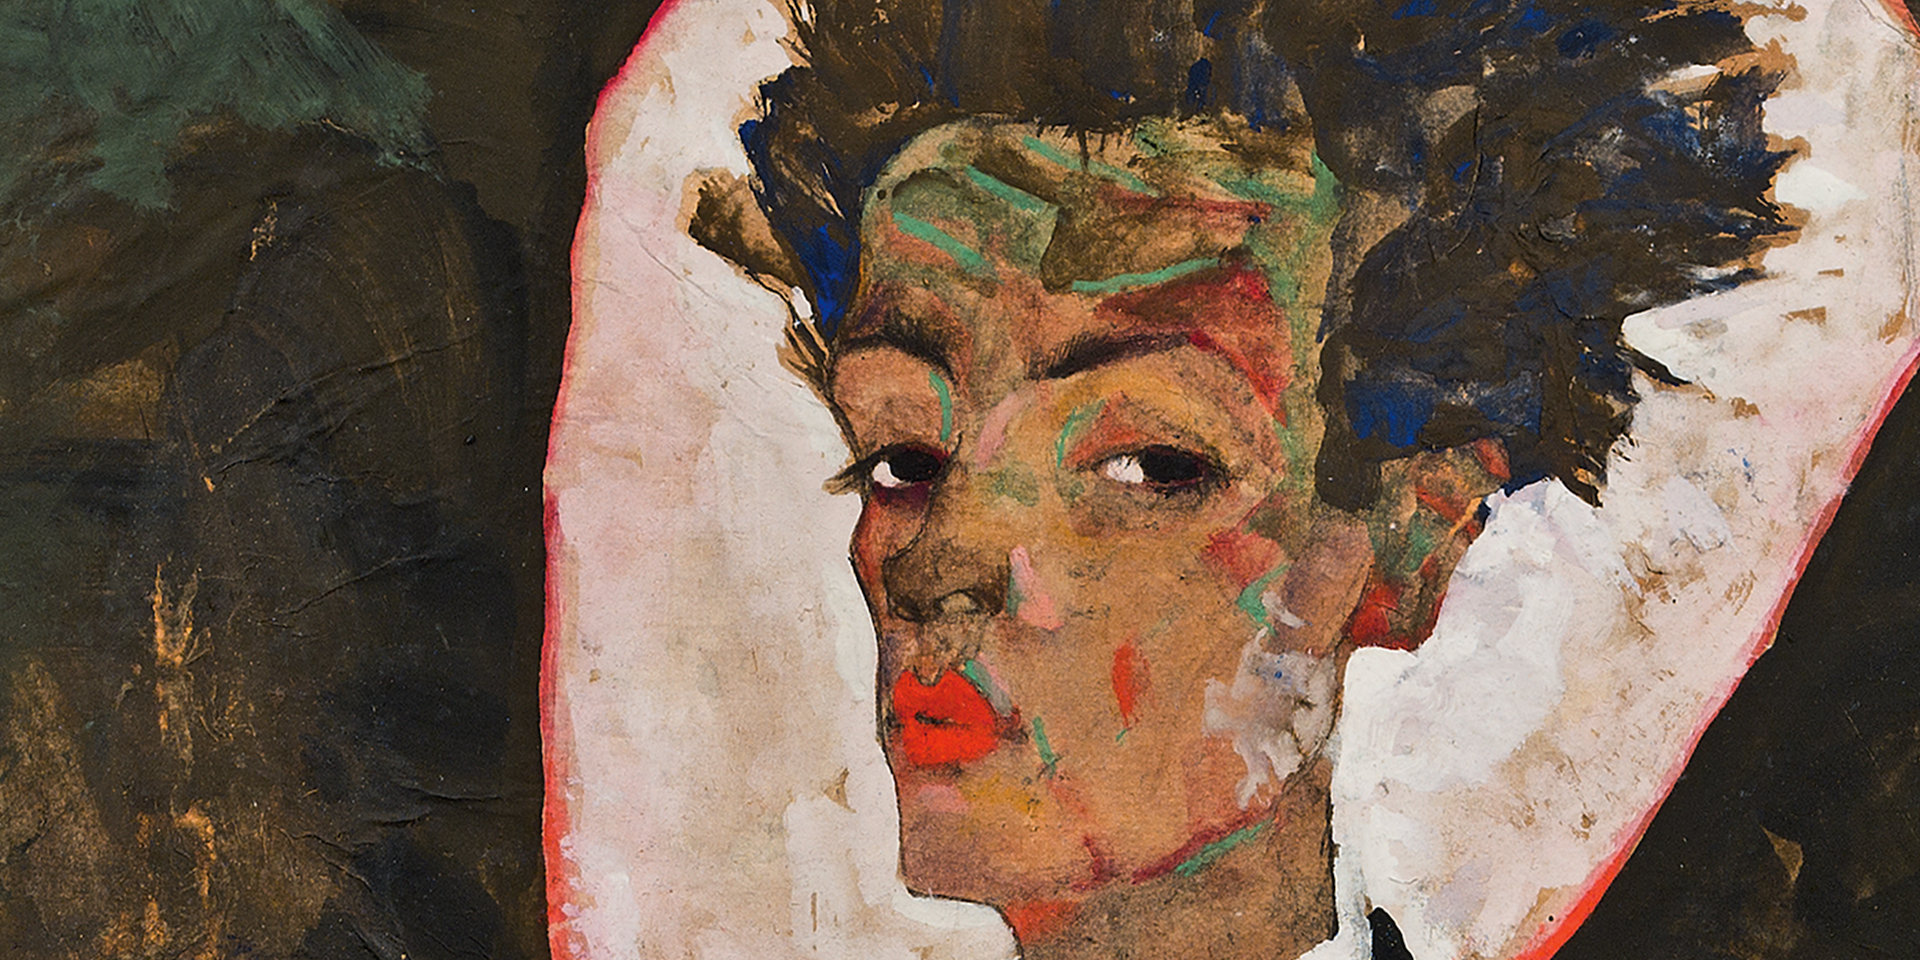 CAUSERIE AUX COLLECTIONS : L''UVRE D'EGON SCHIELE